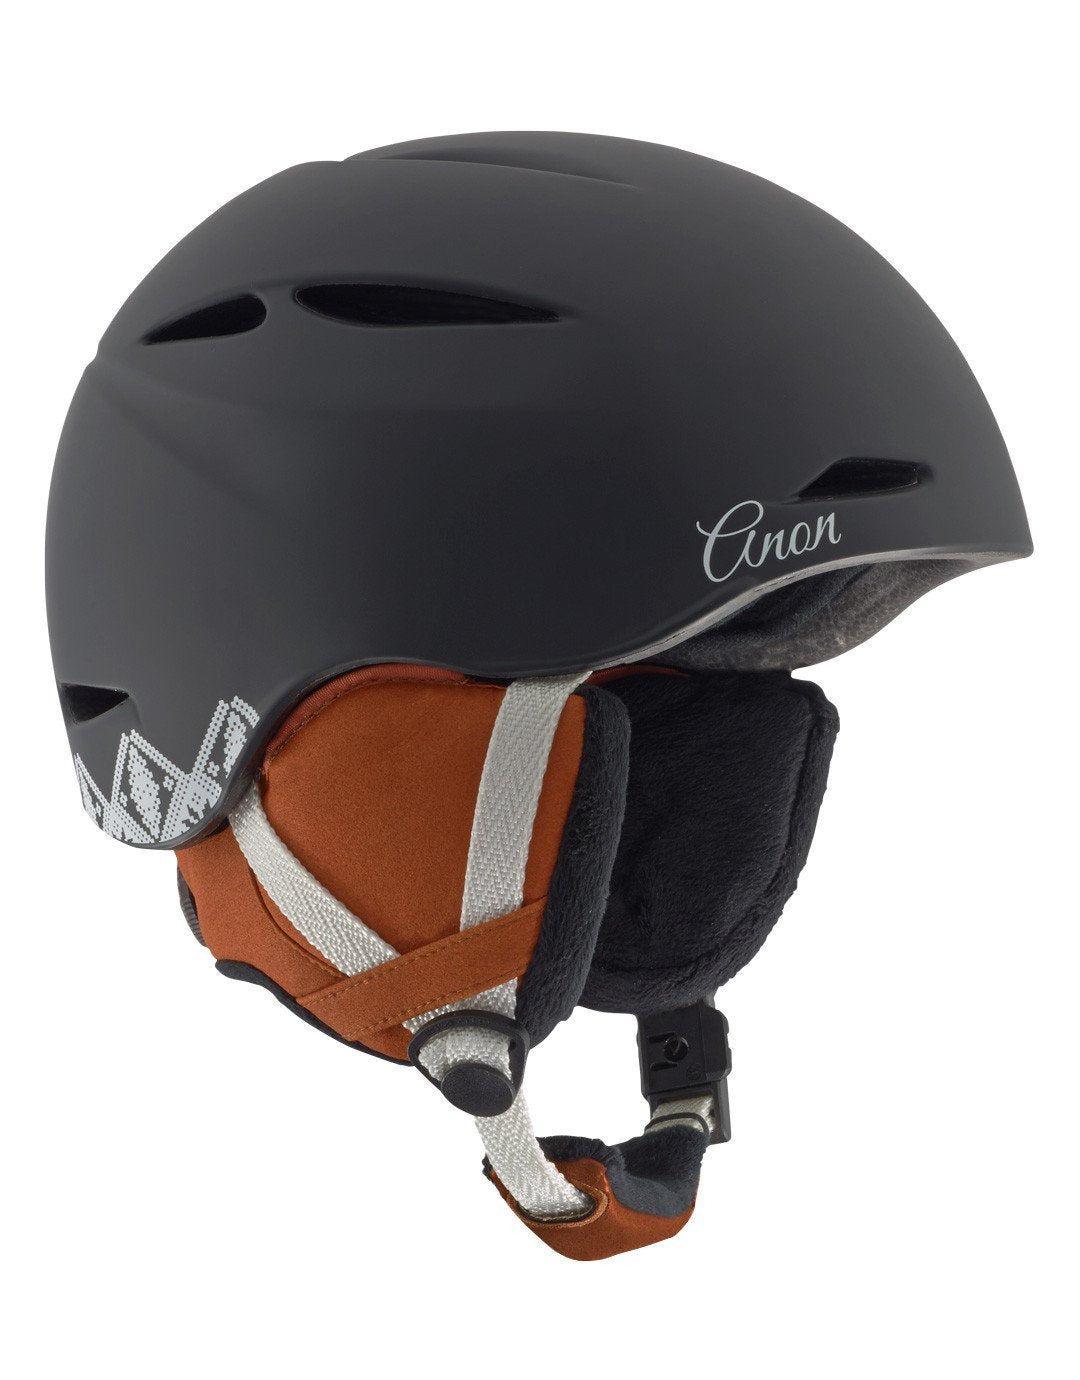 Image of Anon Womens Keira Helmet - Apres Black